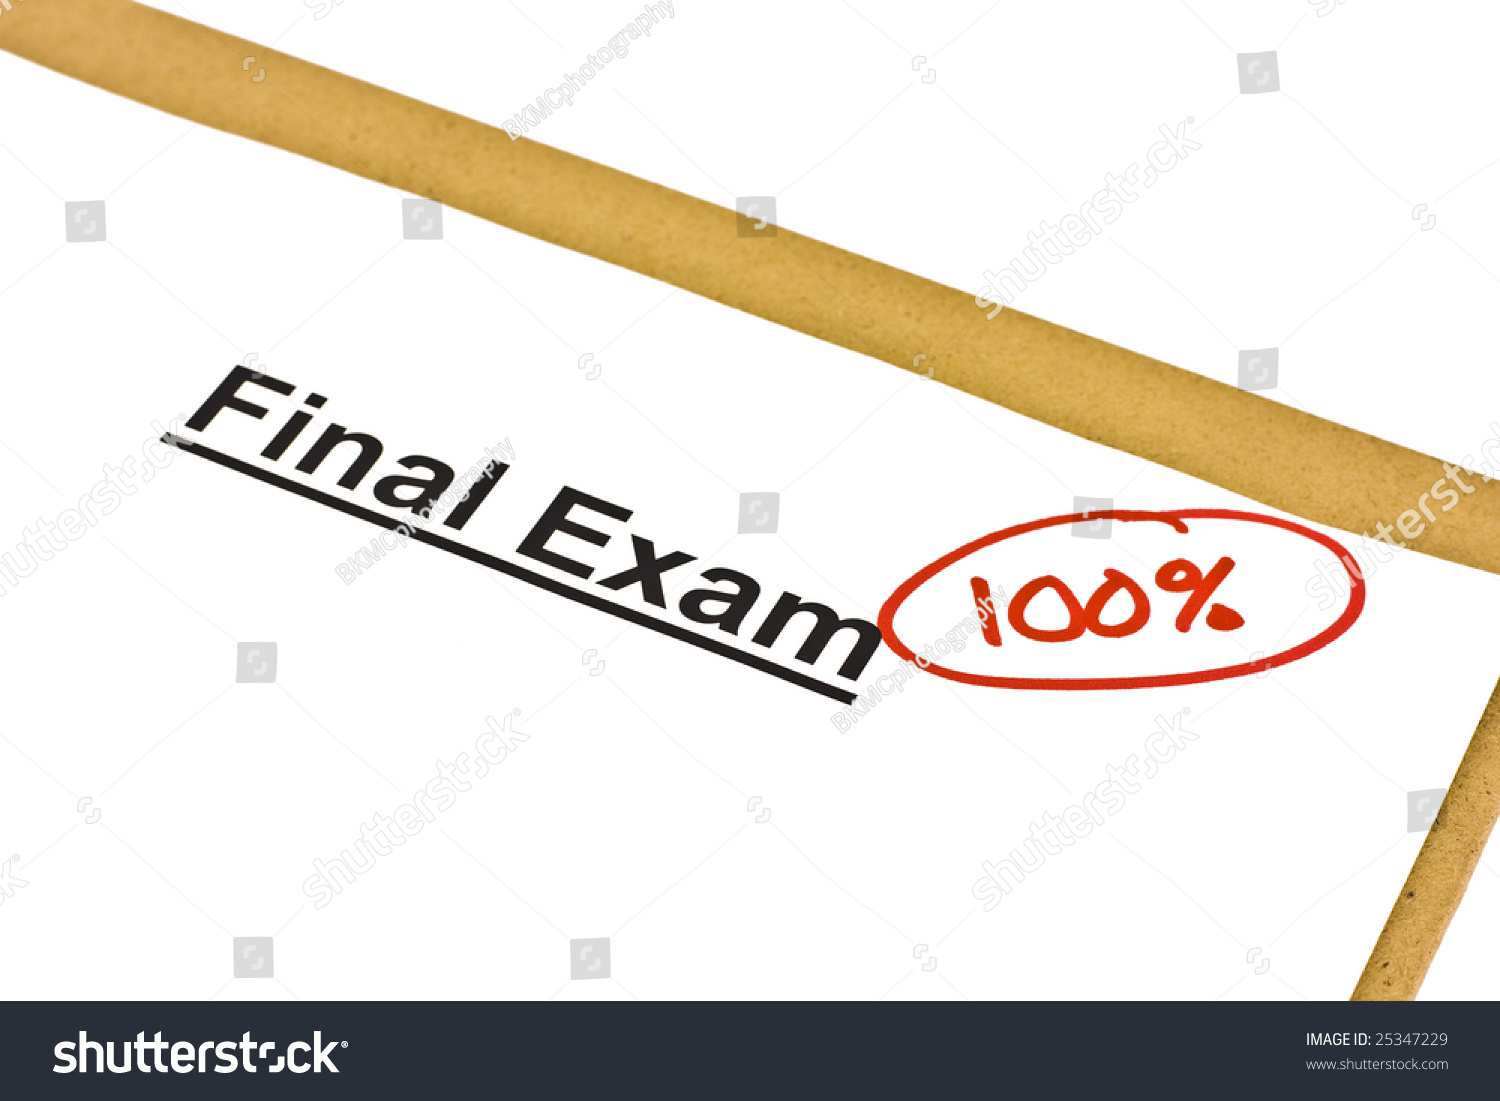 Final Exam Marked With 100  Isolated On White  Stock Photo